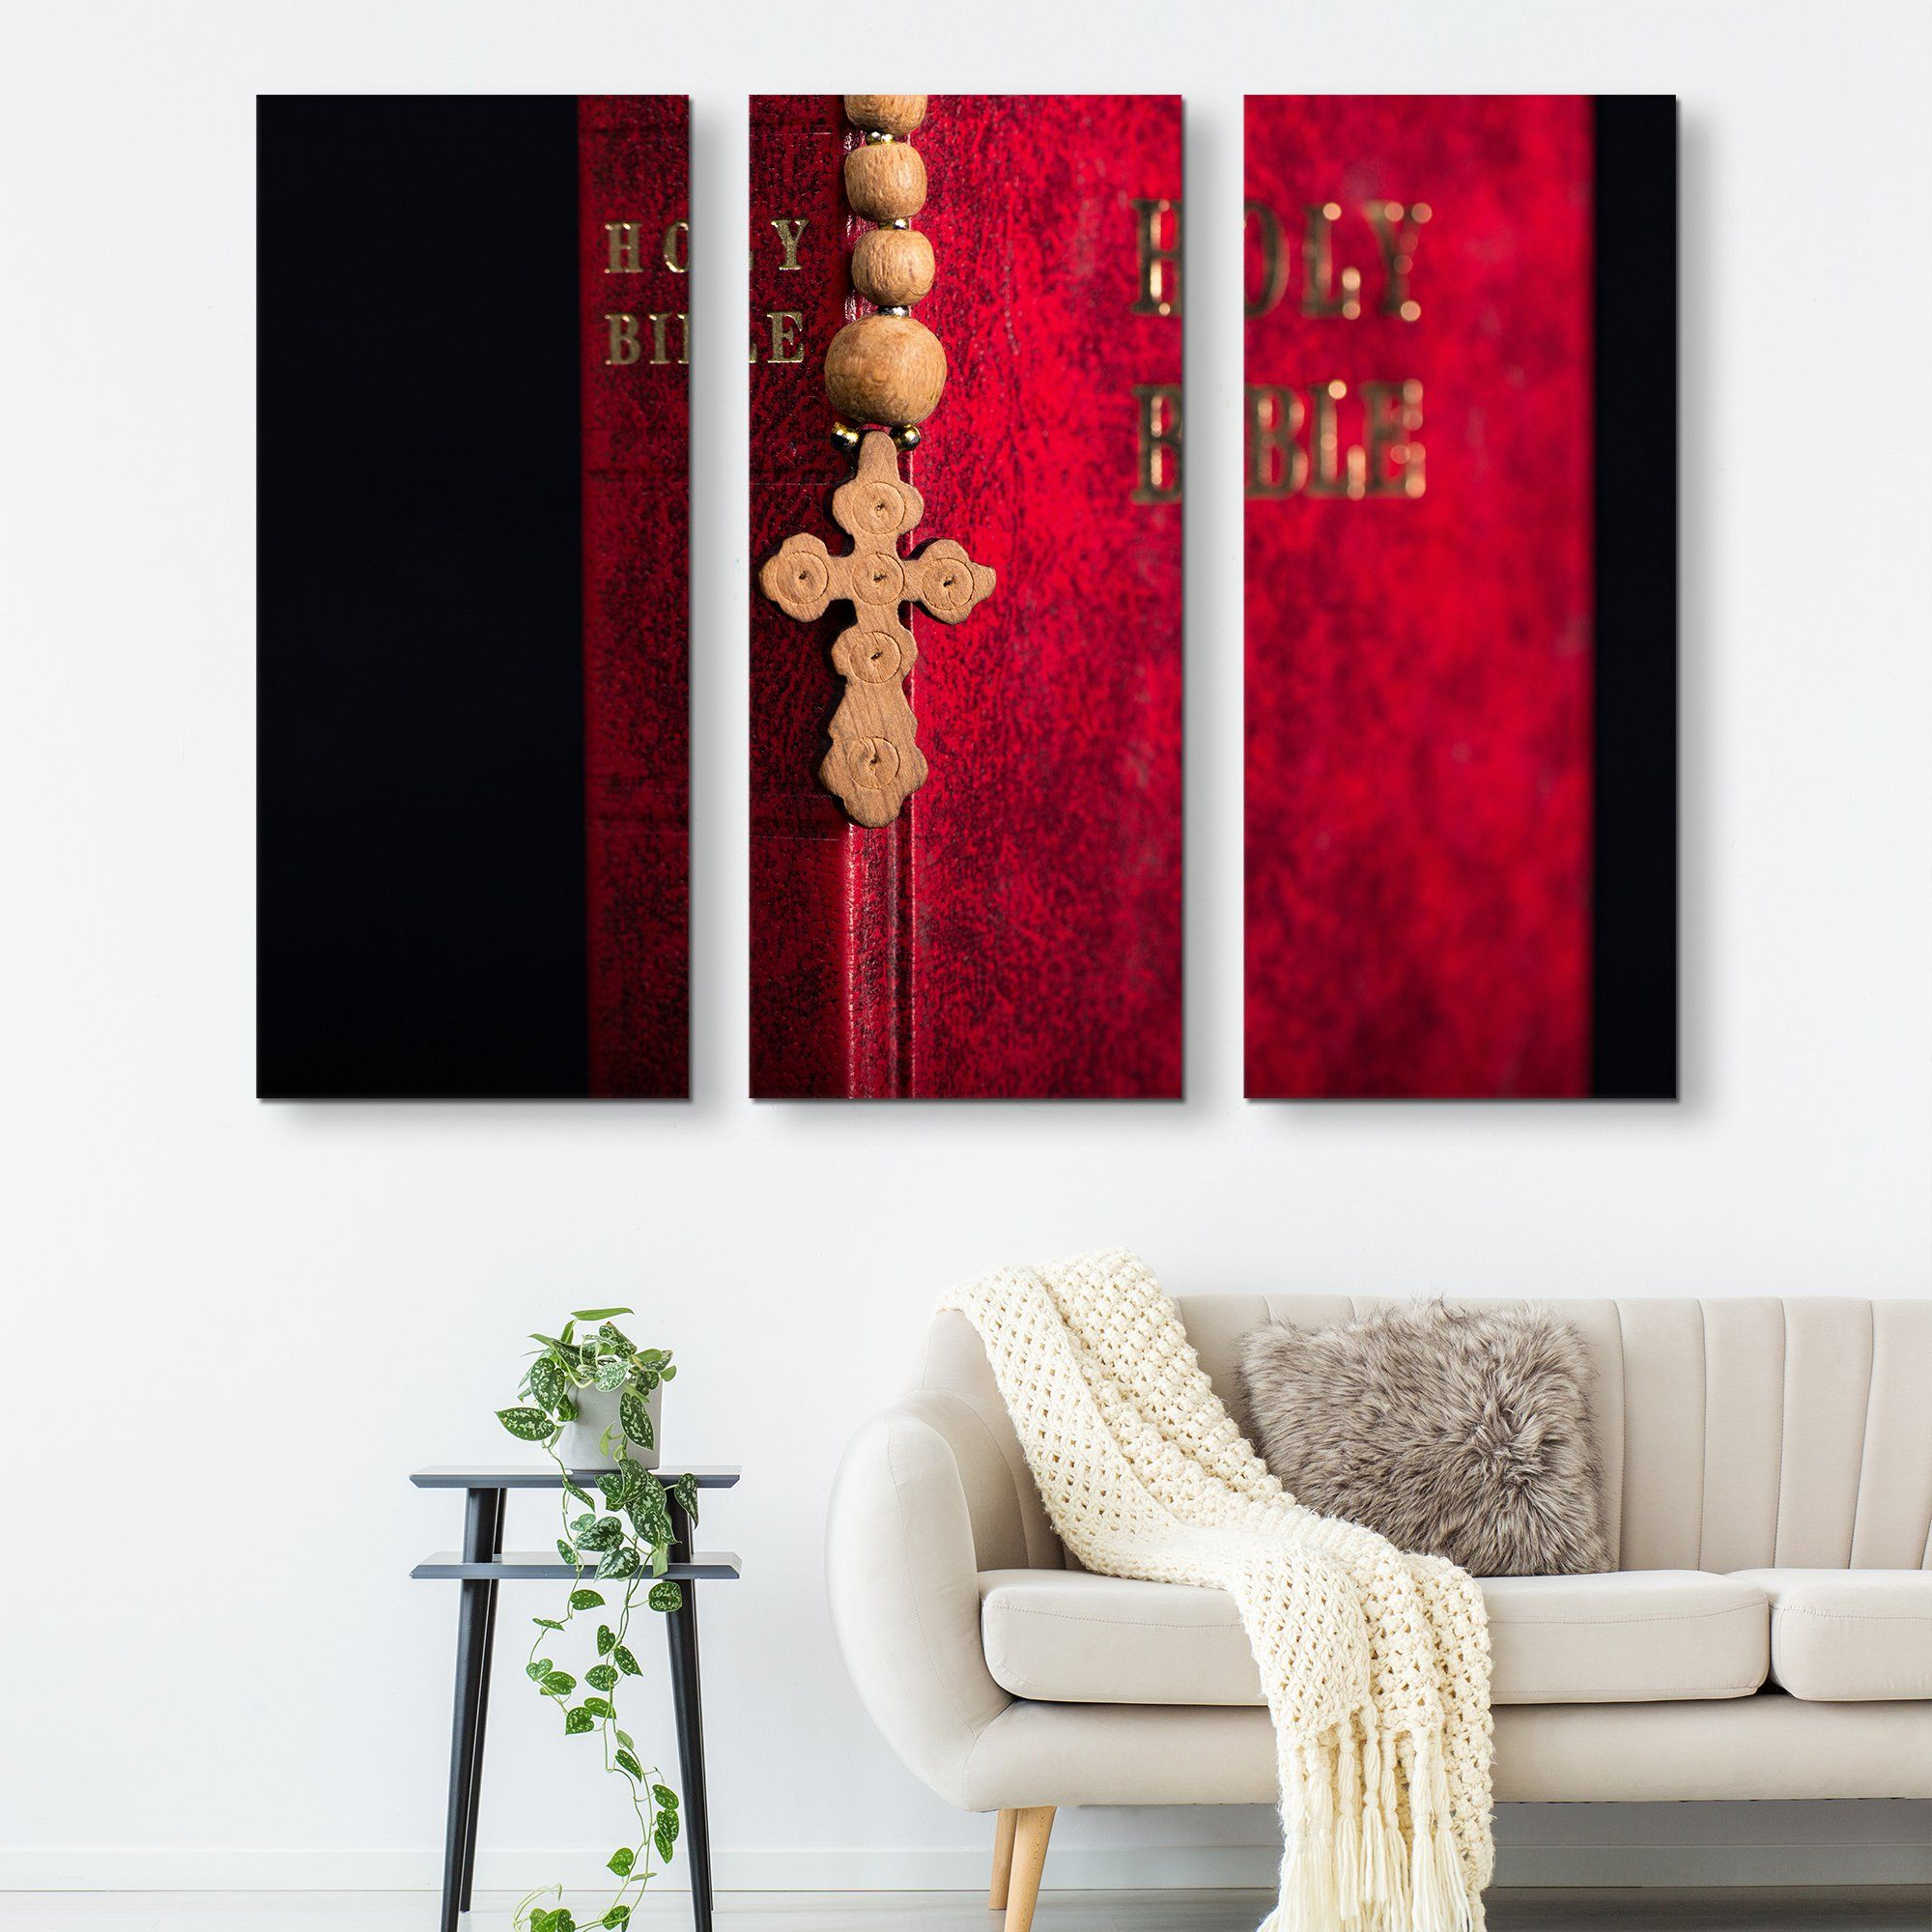 3 piece The Holy Bible wall art